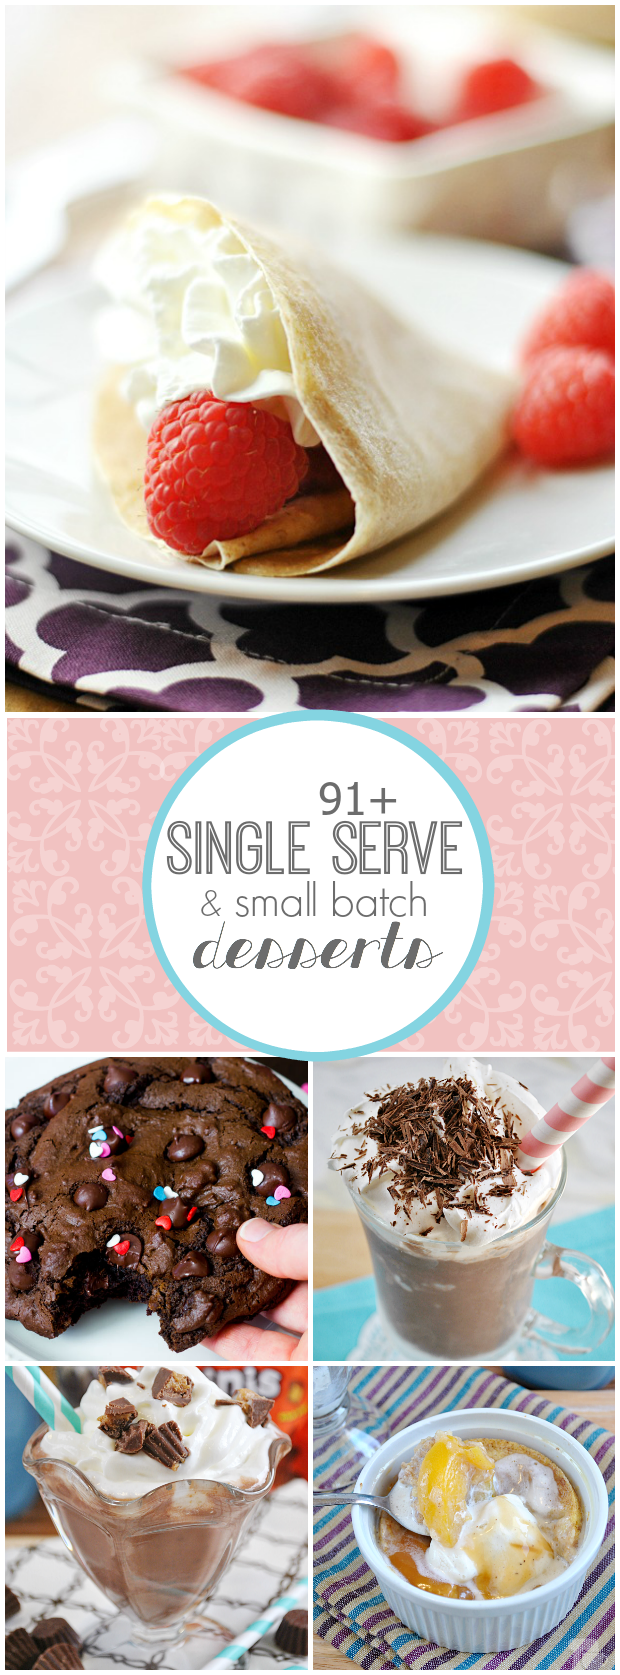 91+ Small Batch and Single Serve Dessert Recipes